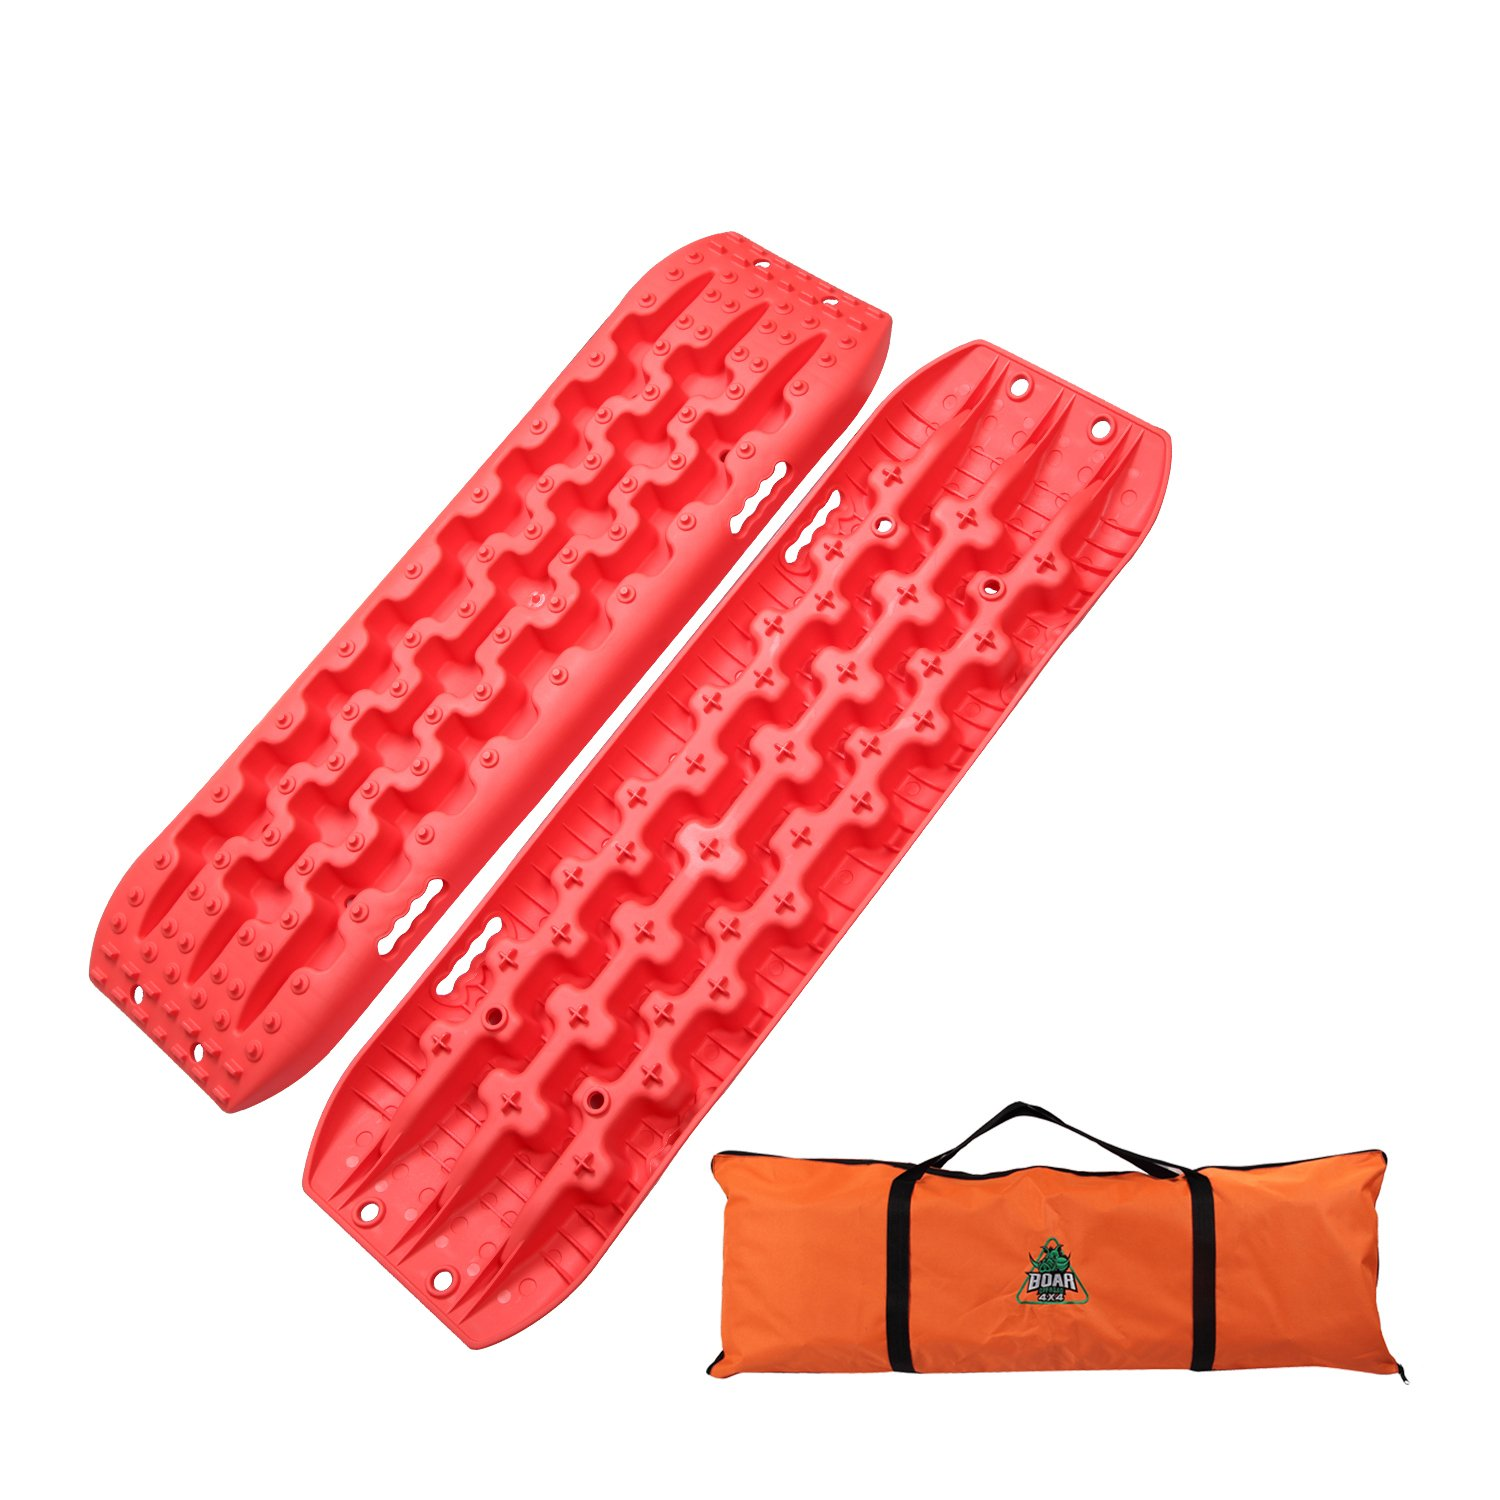 OFFROAD BOAR Recovey Tracks Sand Mud Snow Traction Boards(2Pack) (Orange)